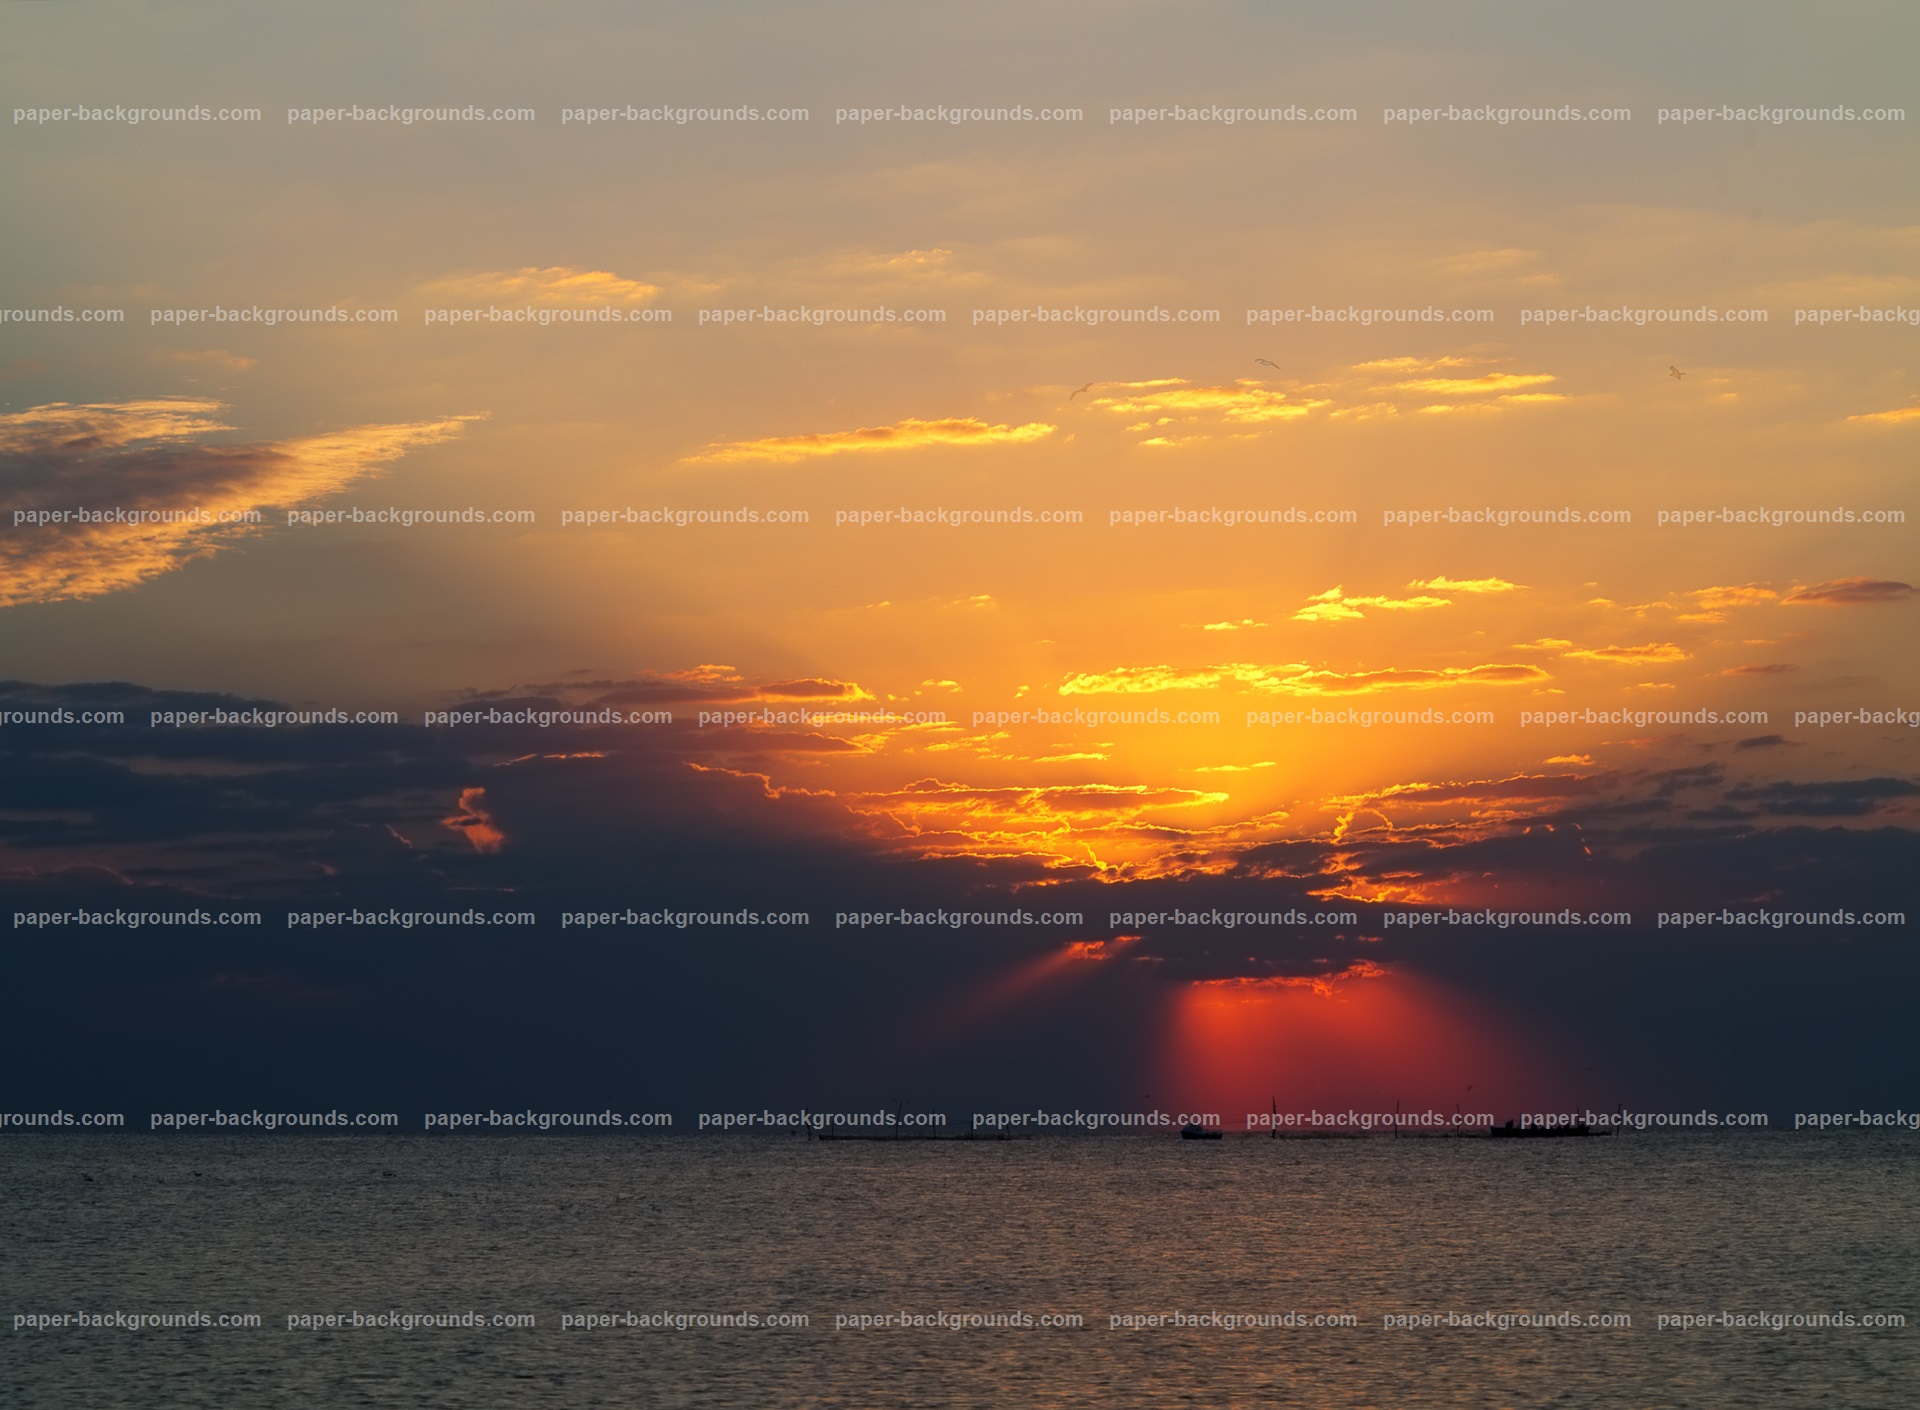 Sea Dramatic Sunrise Sky Clouds HD